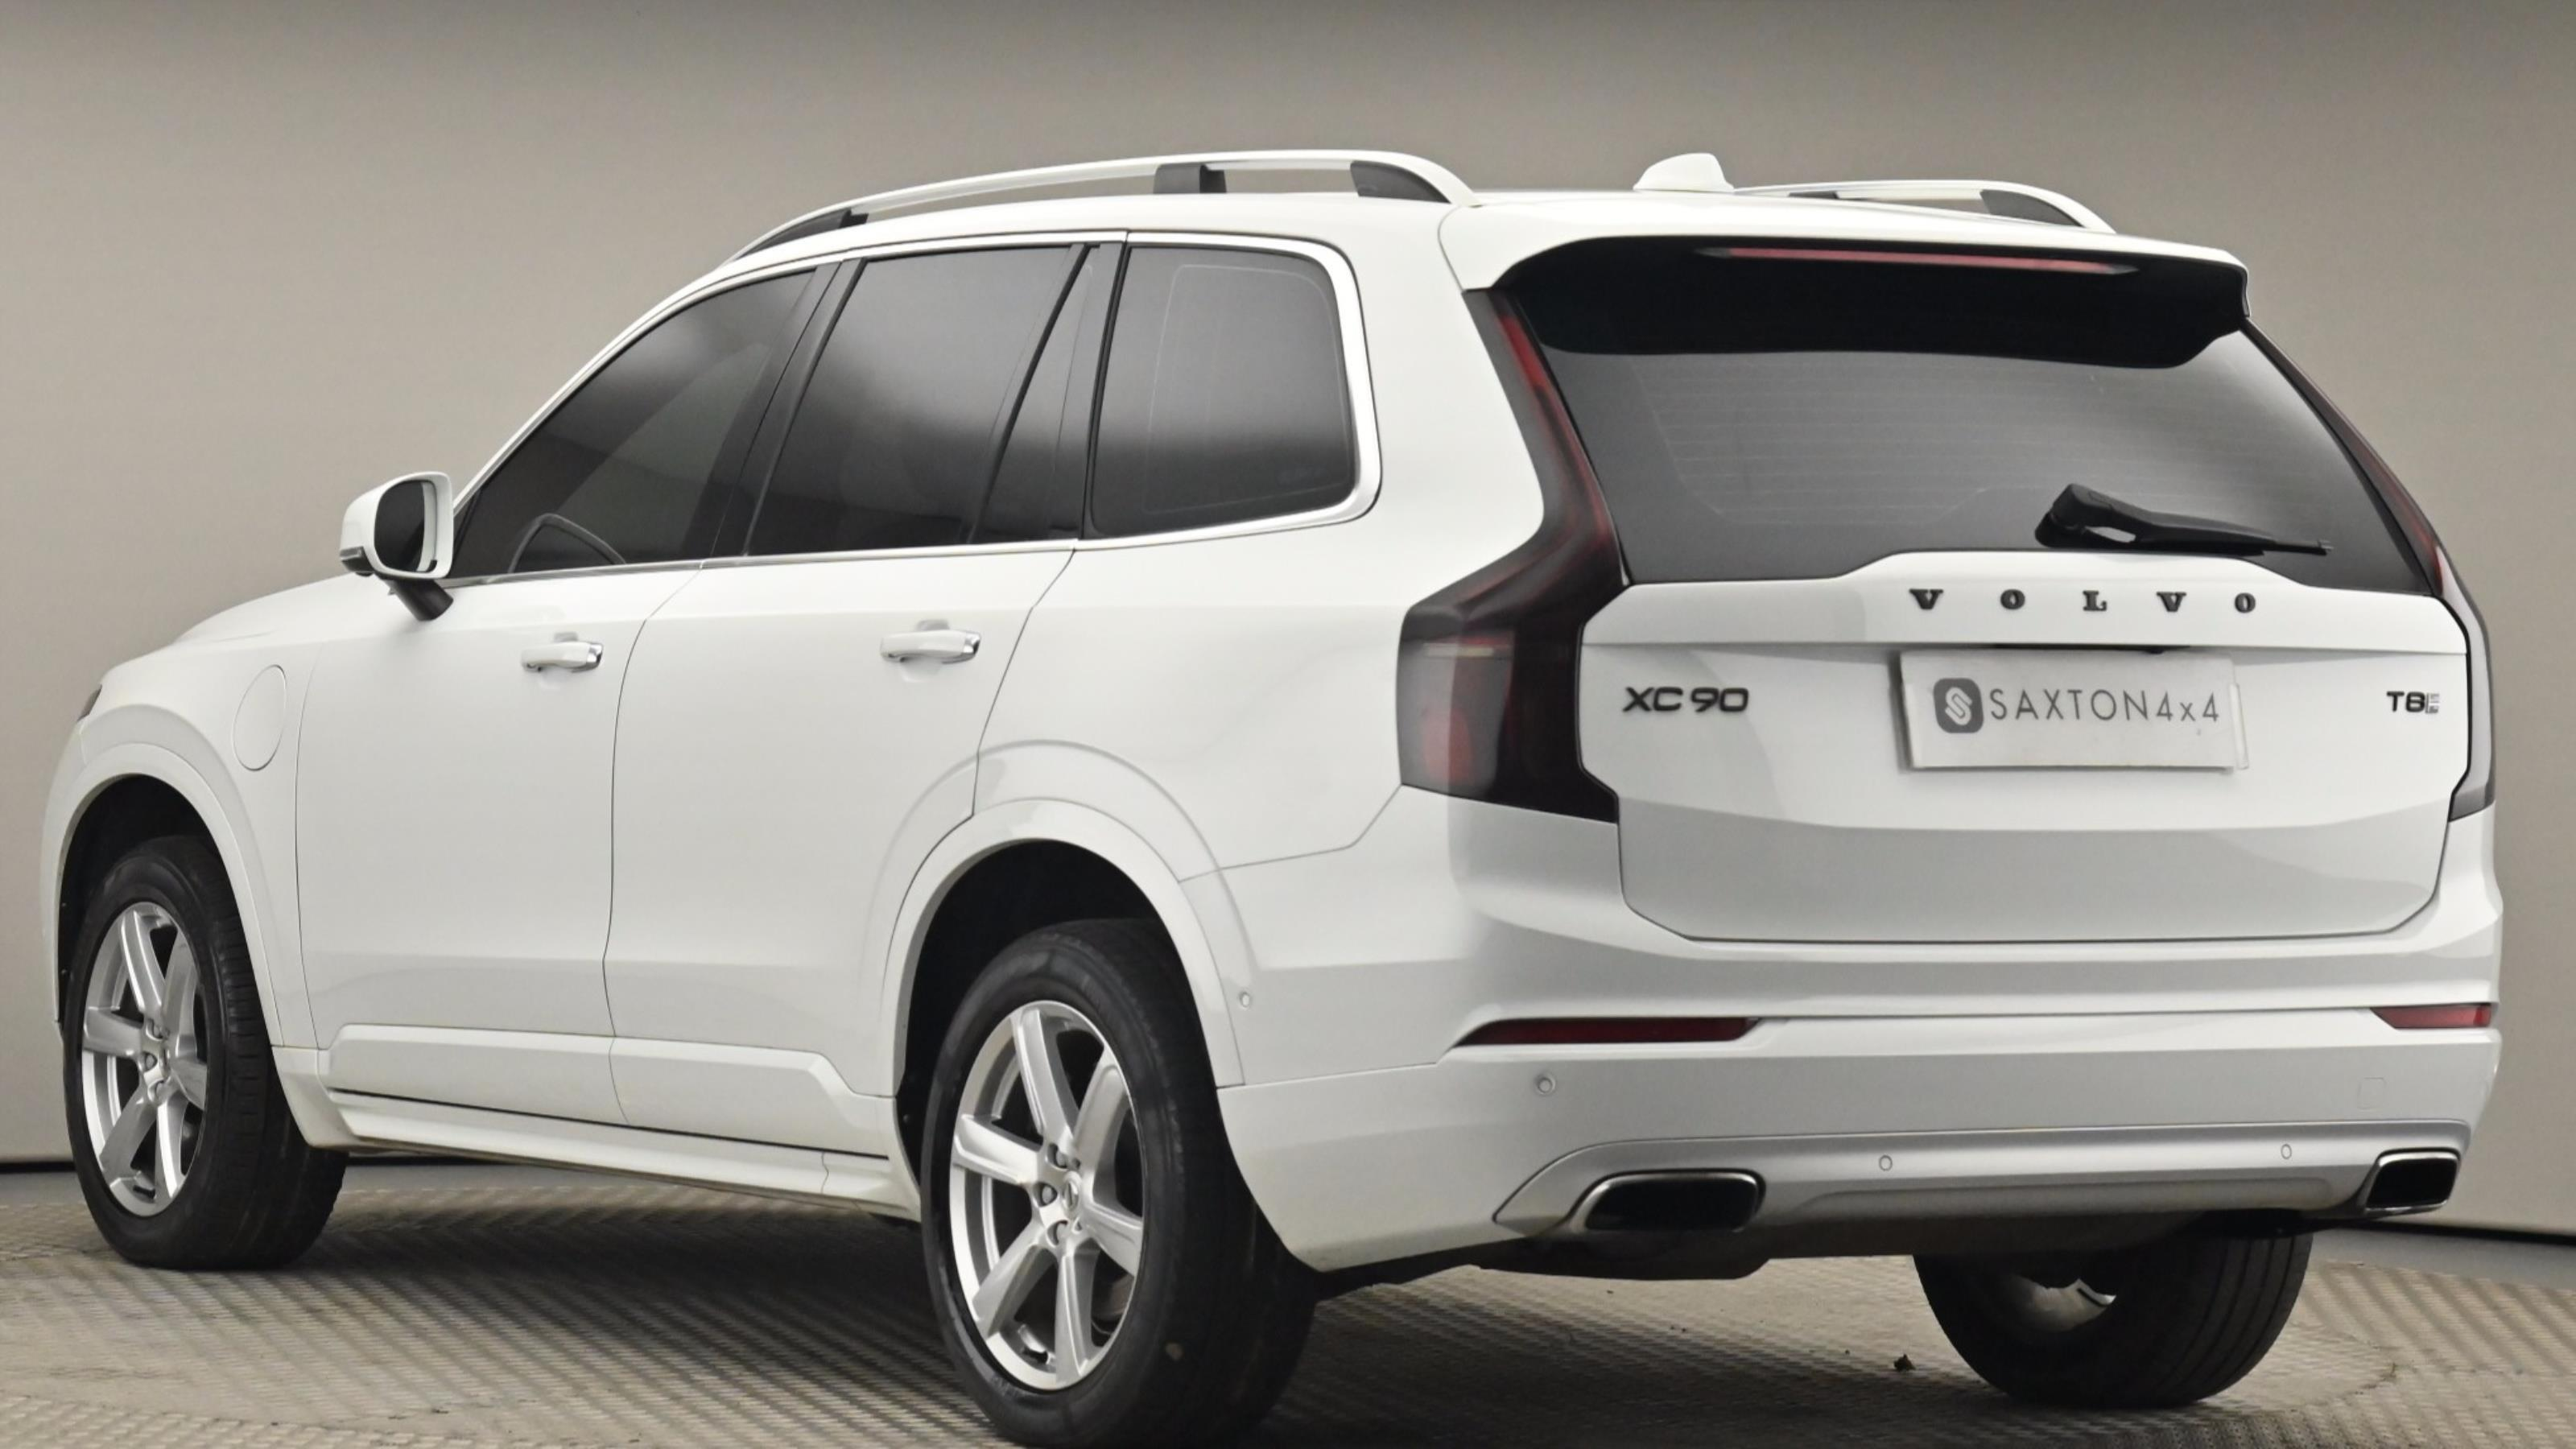 Used 2017 Volvo XC90 2.0 T8 Hybrid Momentum 5dr Geartronic WHITE at Saxton4x4